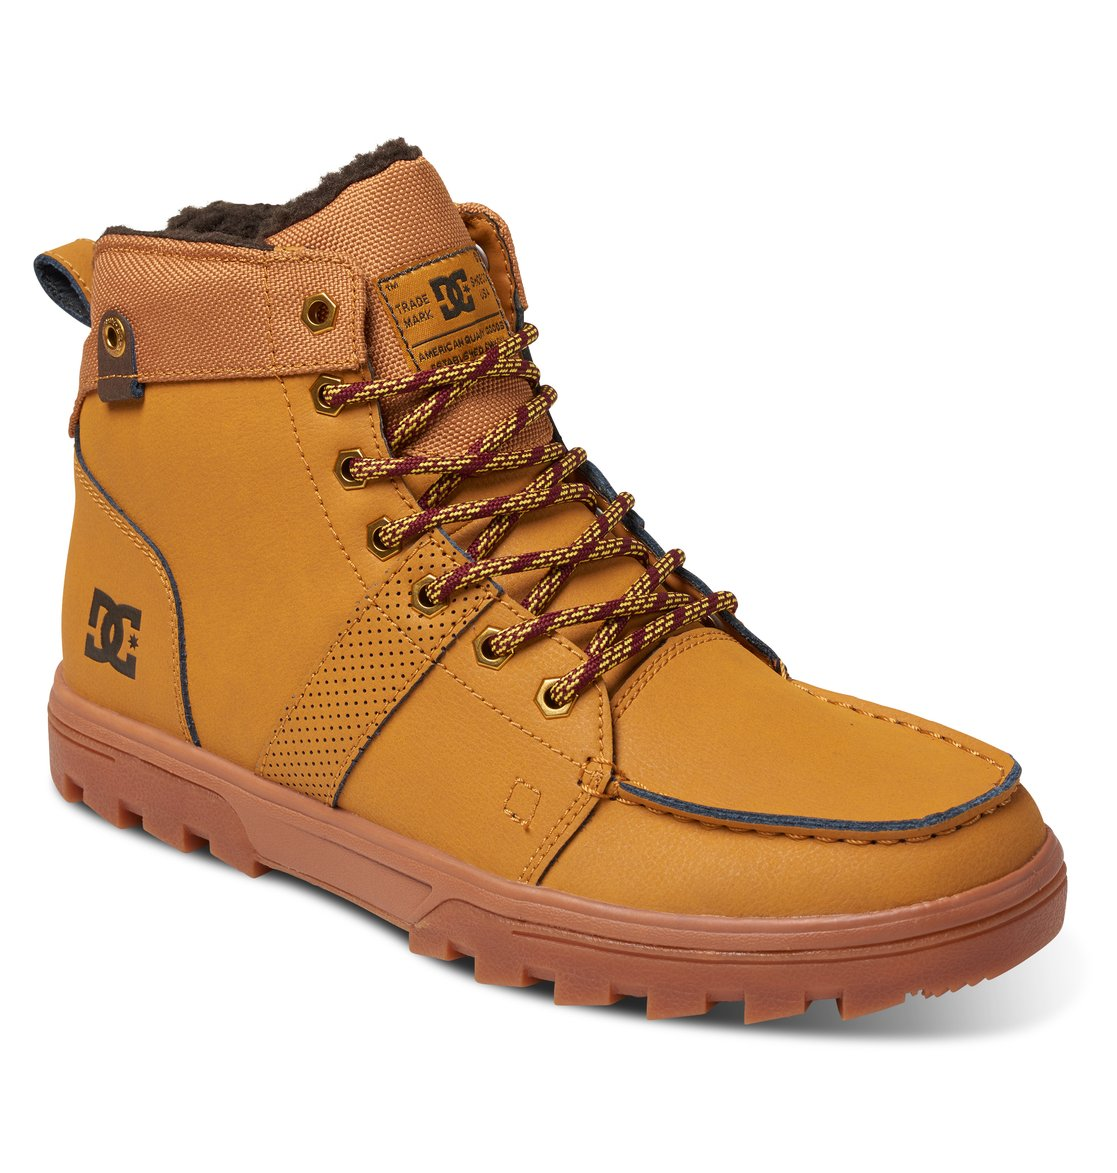 Woodland Snow Boots Tan Leather